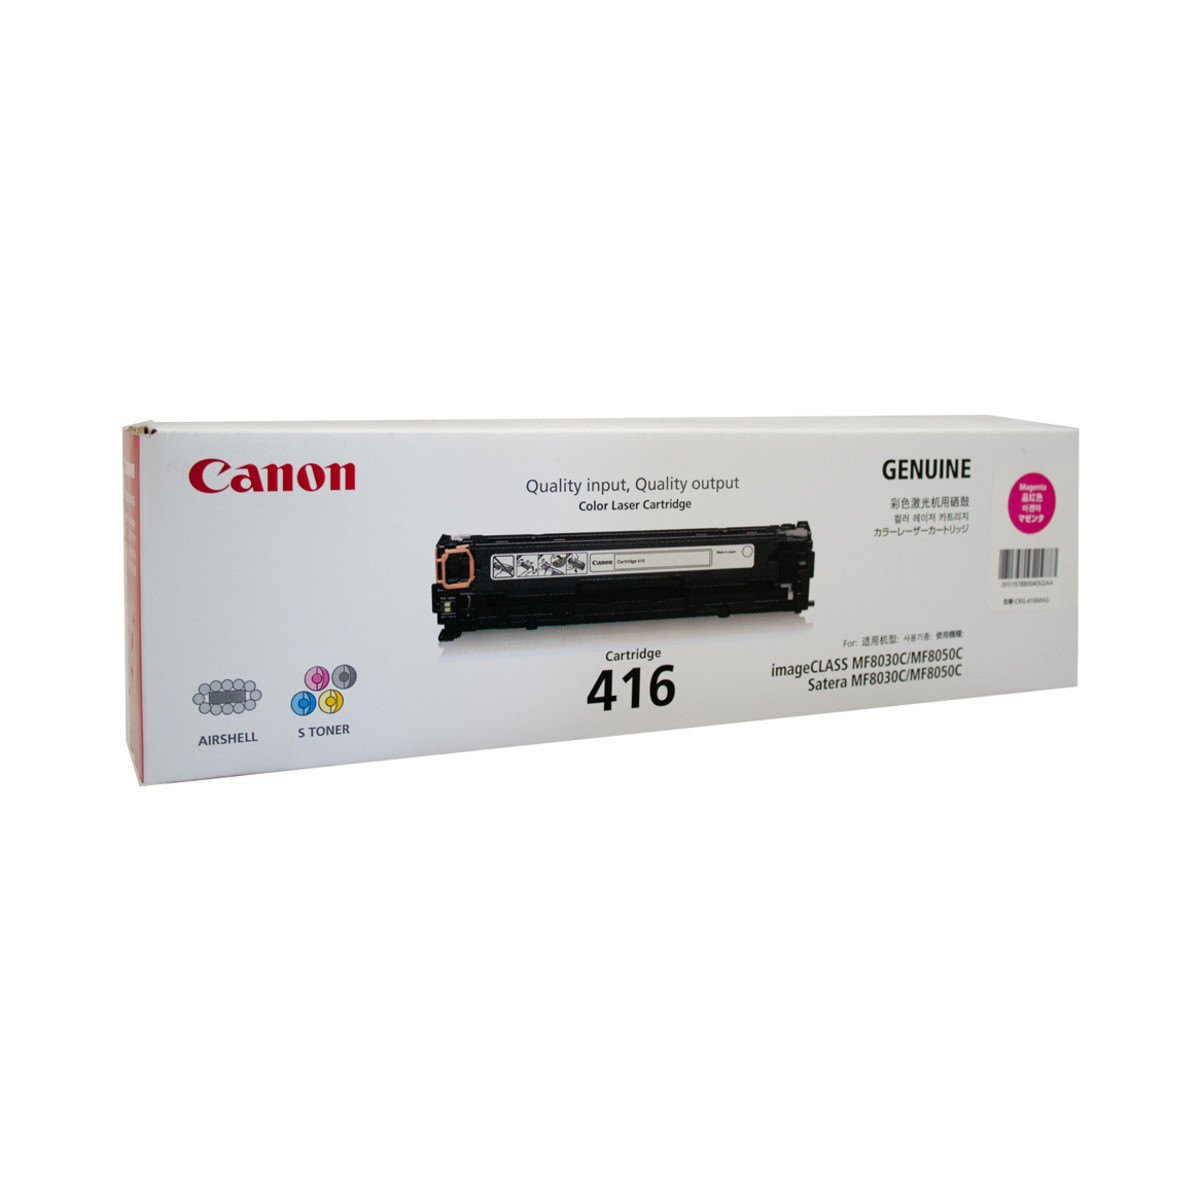 Canon CART-416M Magenta Toner Cartridge